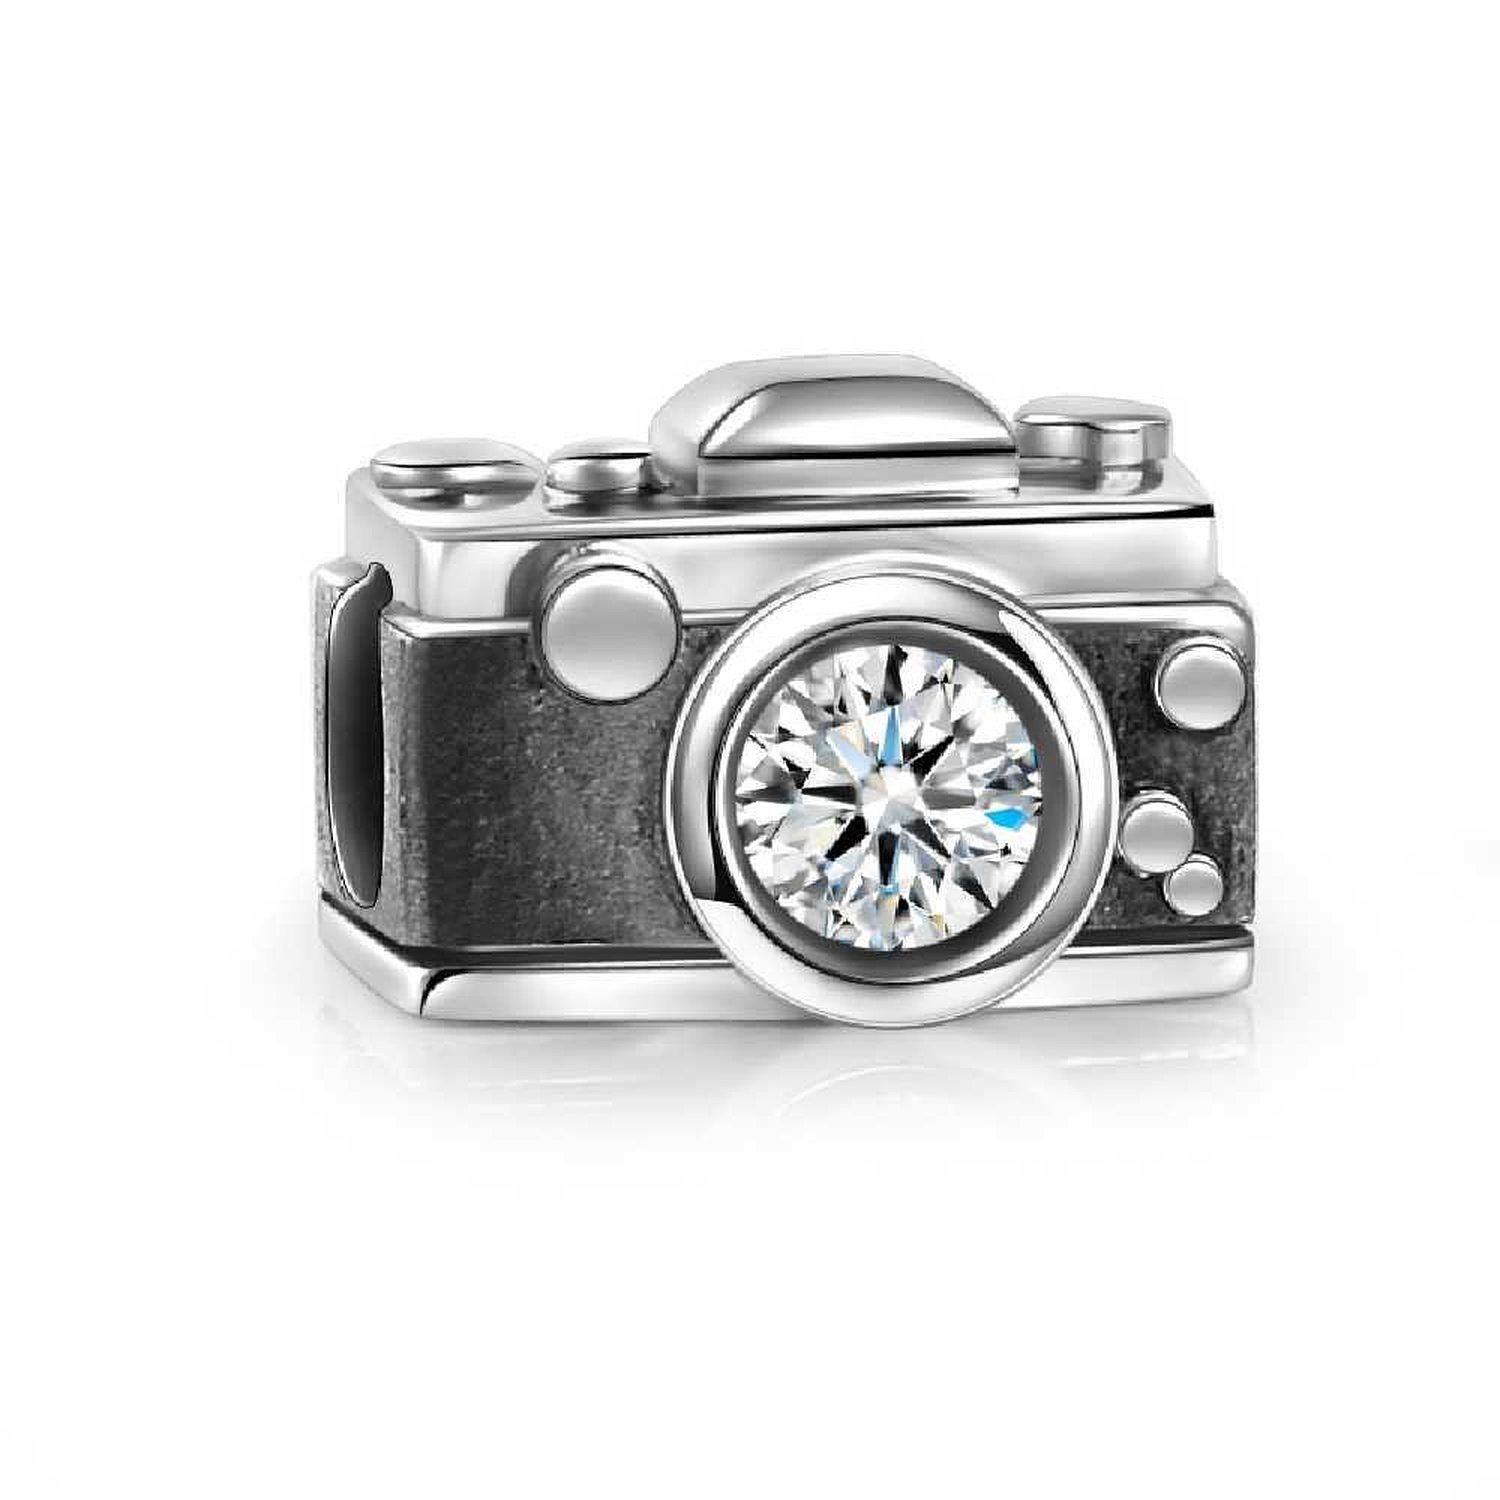 d609ae001 Amazon.com: Vintage Camera Charm 925 Sterling Silver Crystal Bead Fit  Pandora Charms: Jewelry